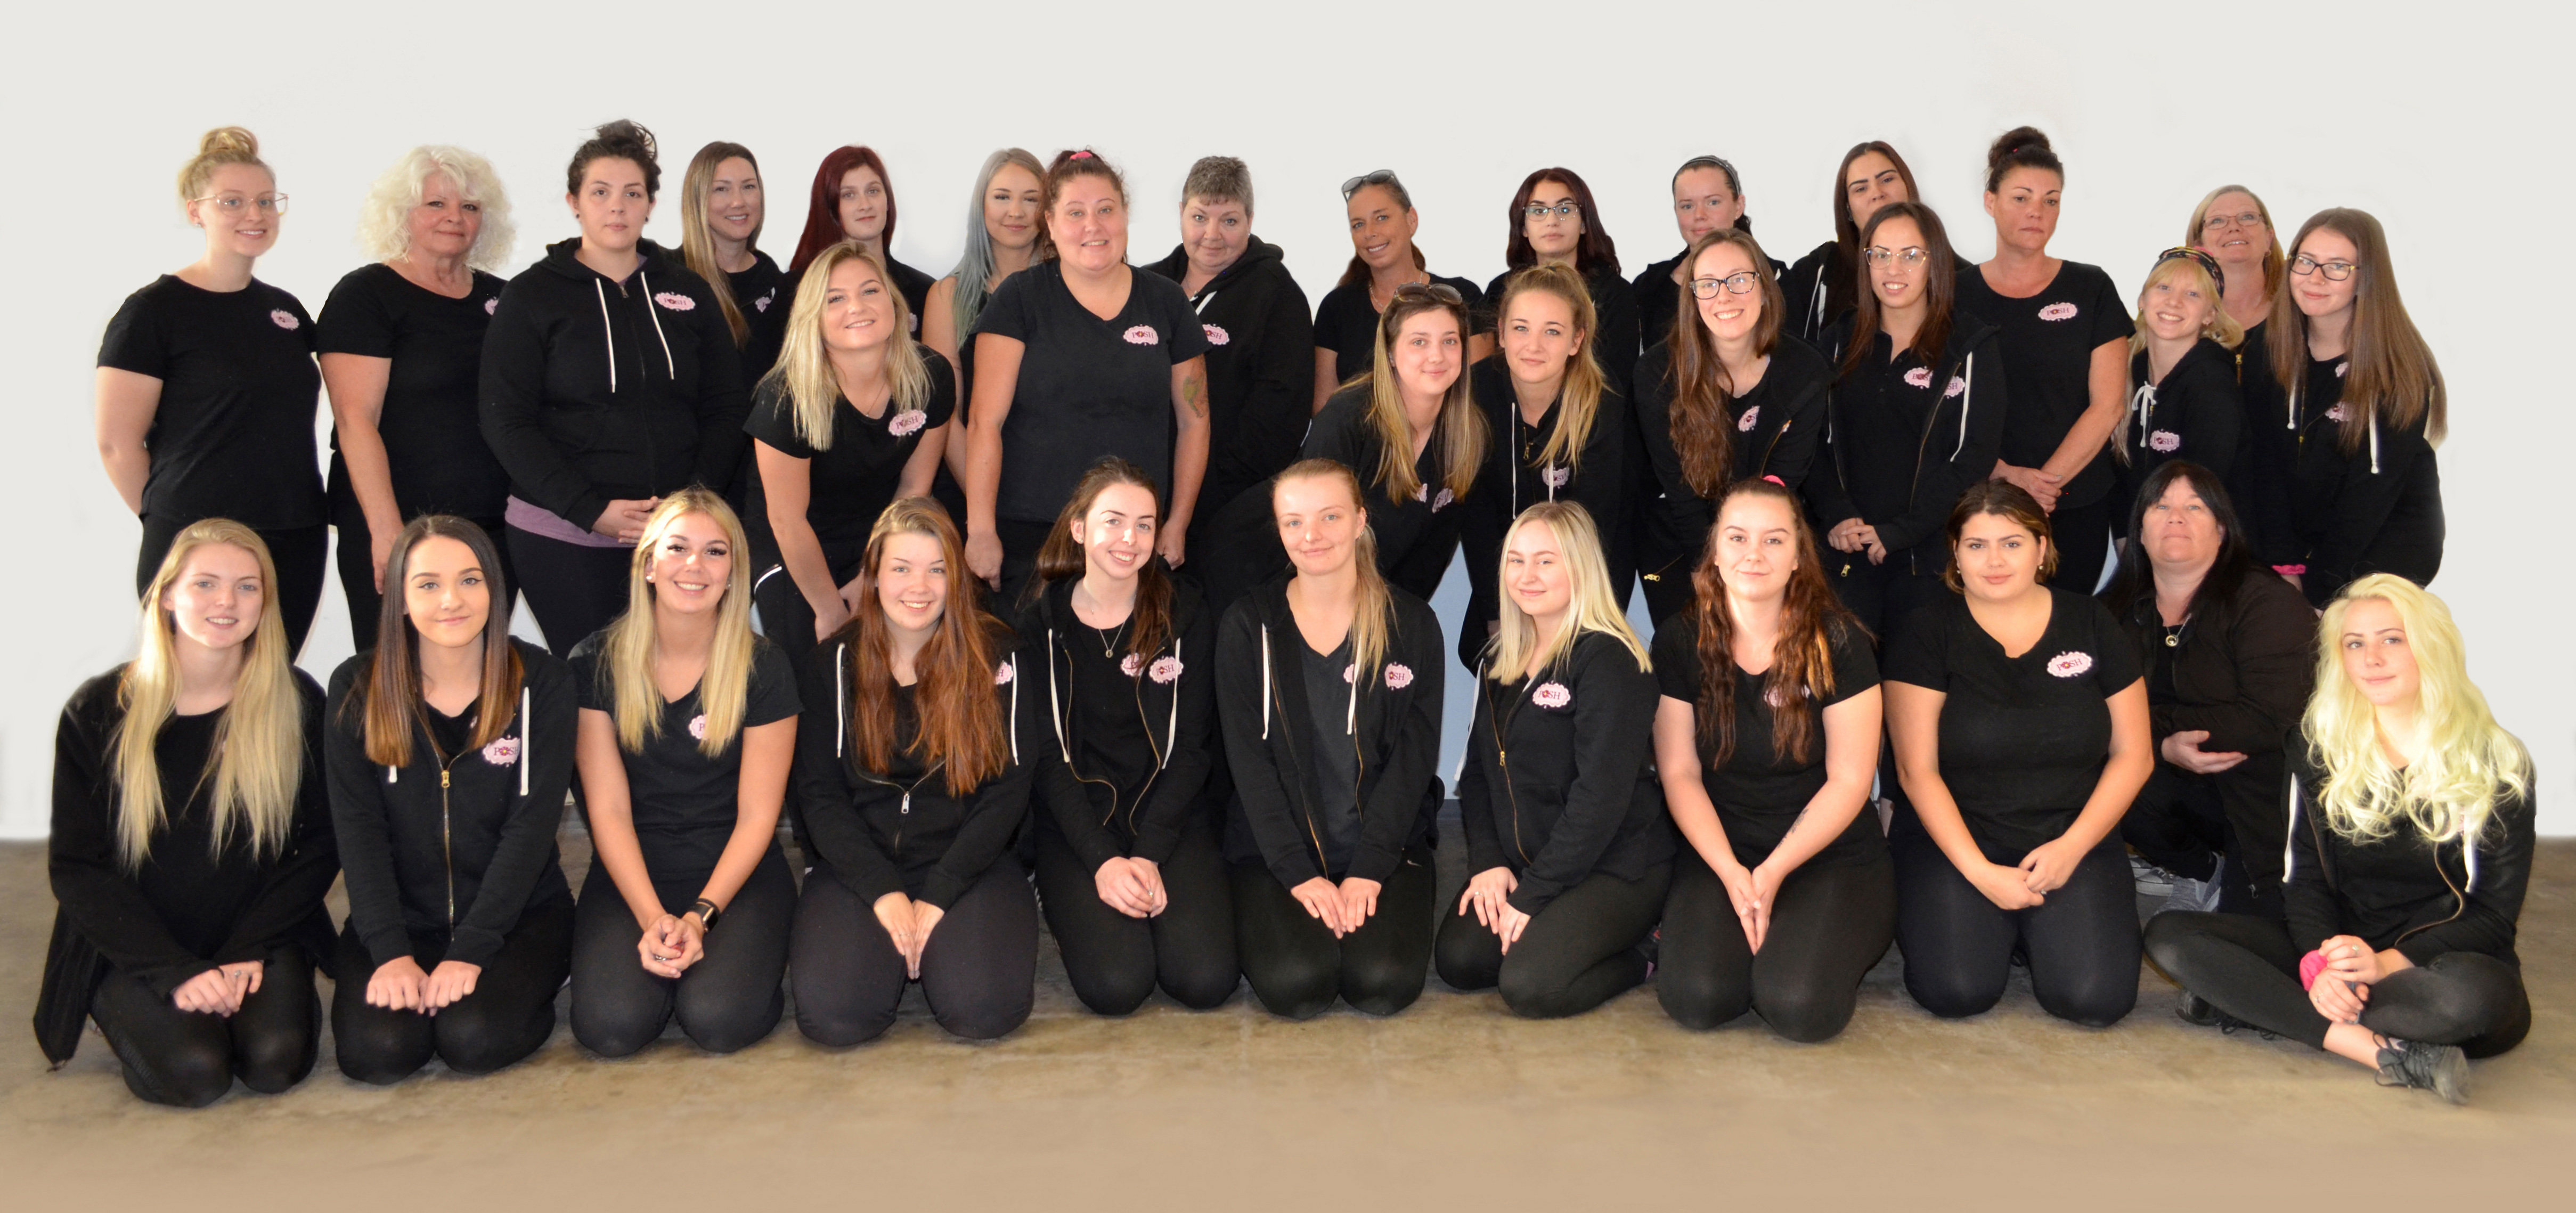 POSH Cleaning Services | POSH Maid Services- POSHployees Staff Photo